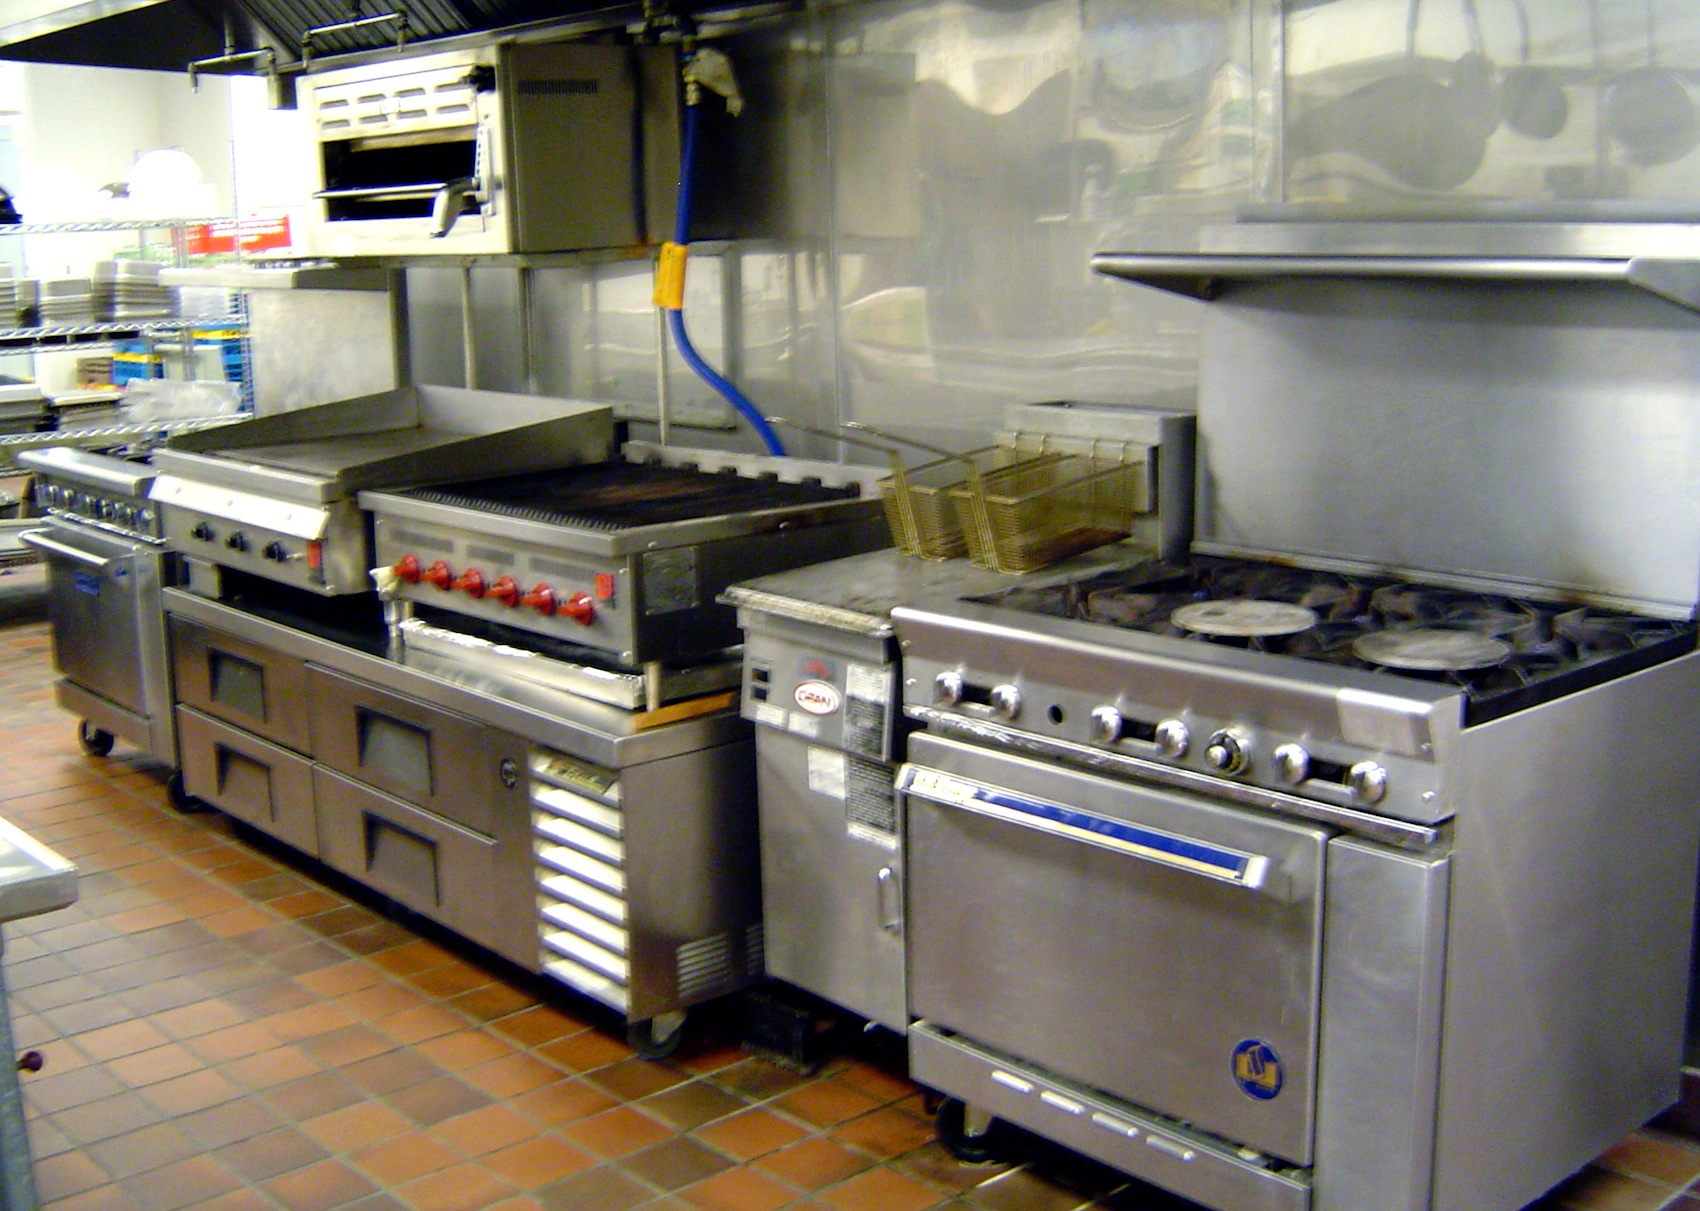 Restaurant Kitchen Equipment Layout small restaurant kitchen layout ~ picgit